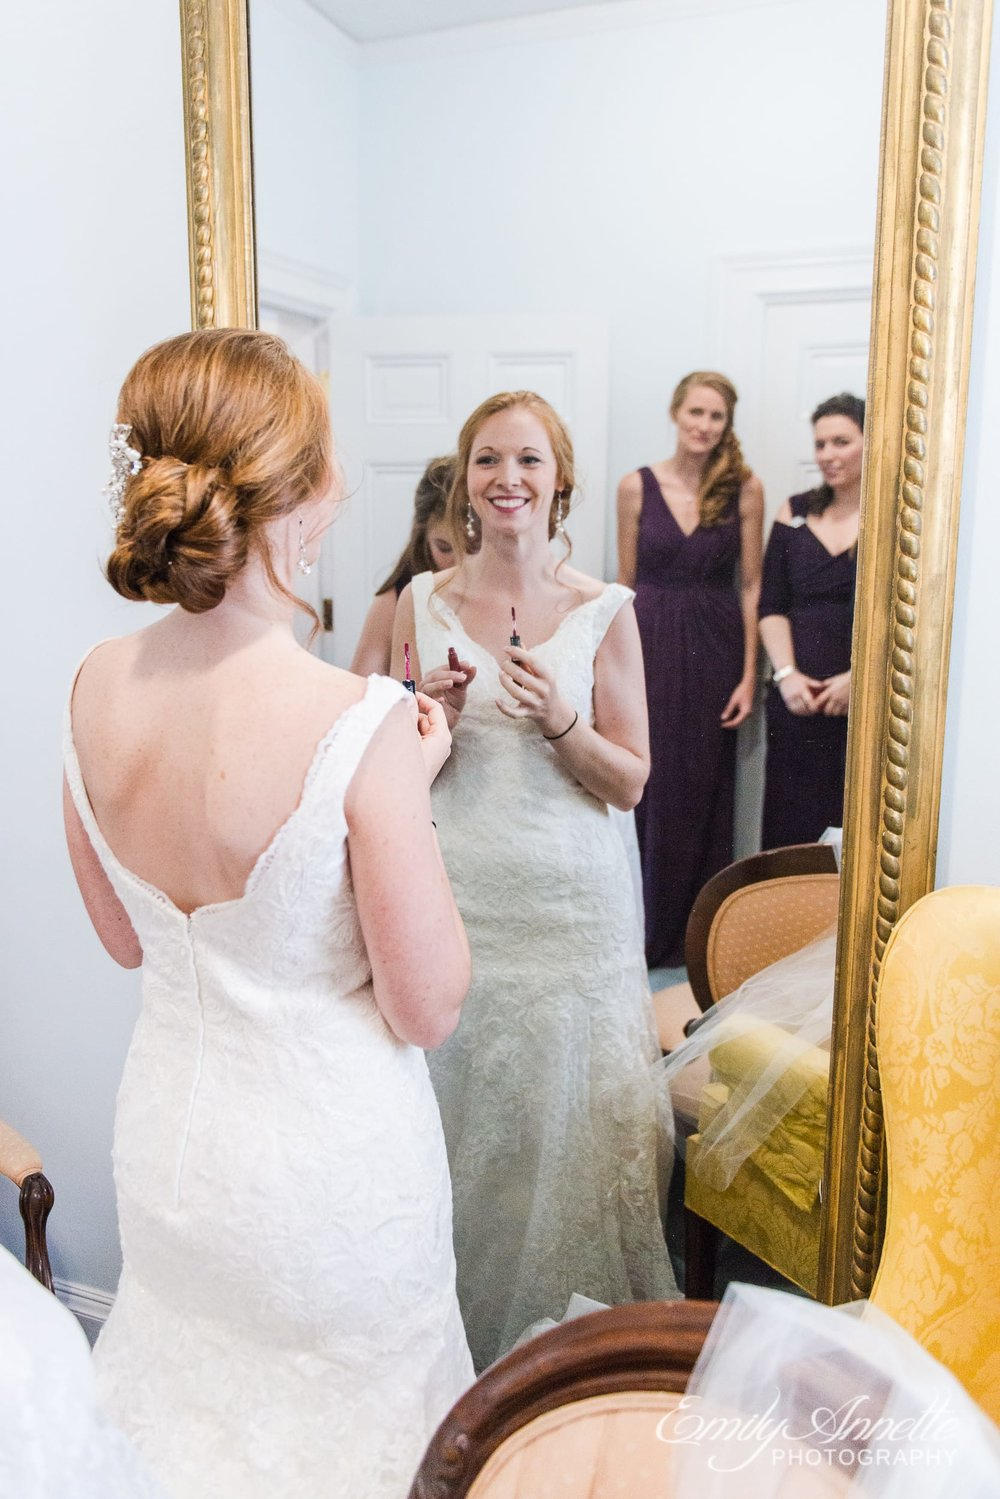 A bride getting ready in the bridal suite of the historic house before her Catholic wedding in Arlington, Virginia